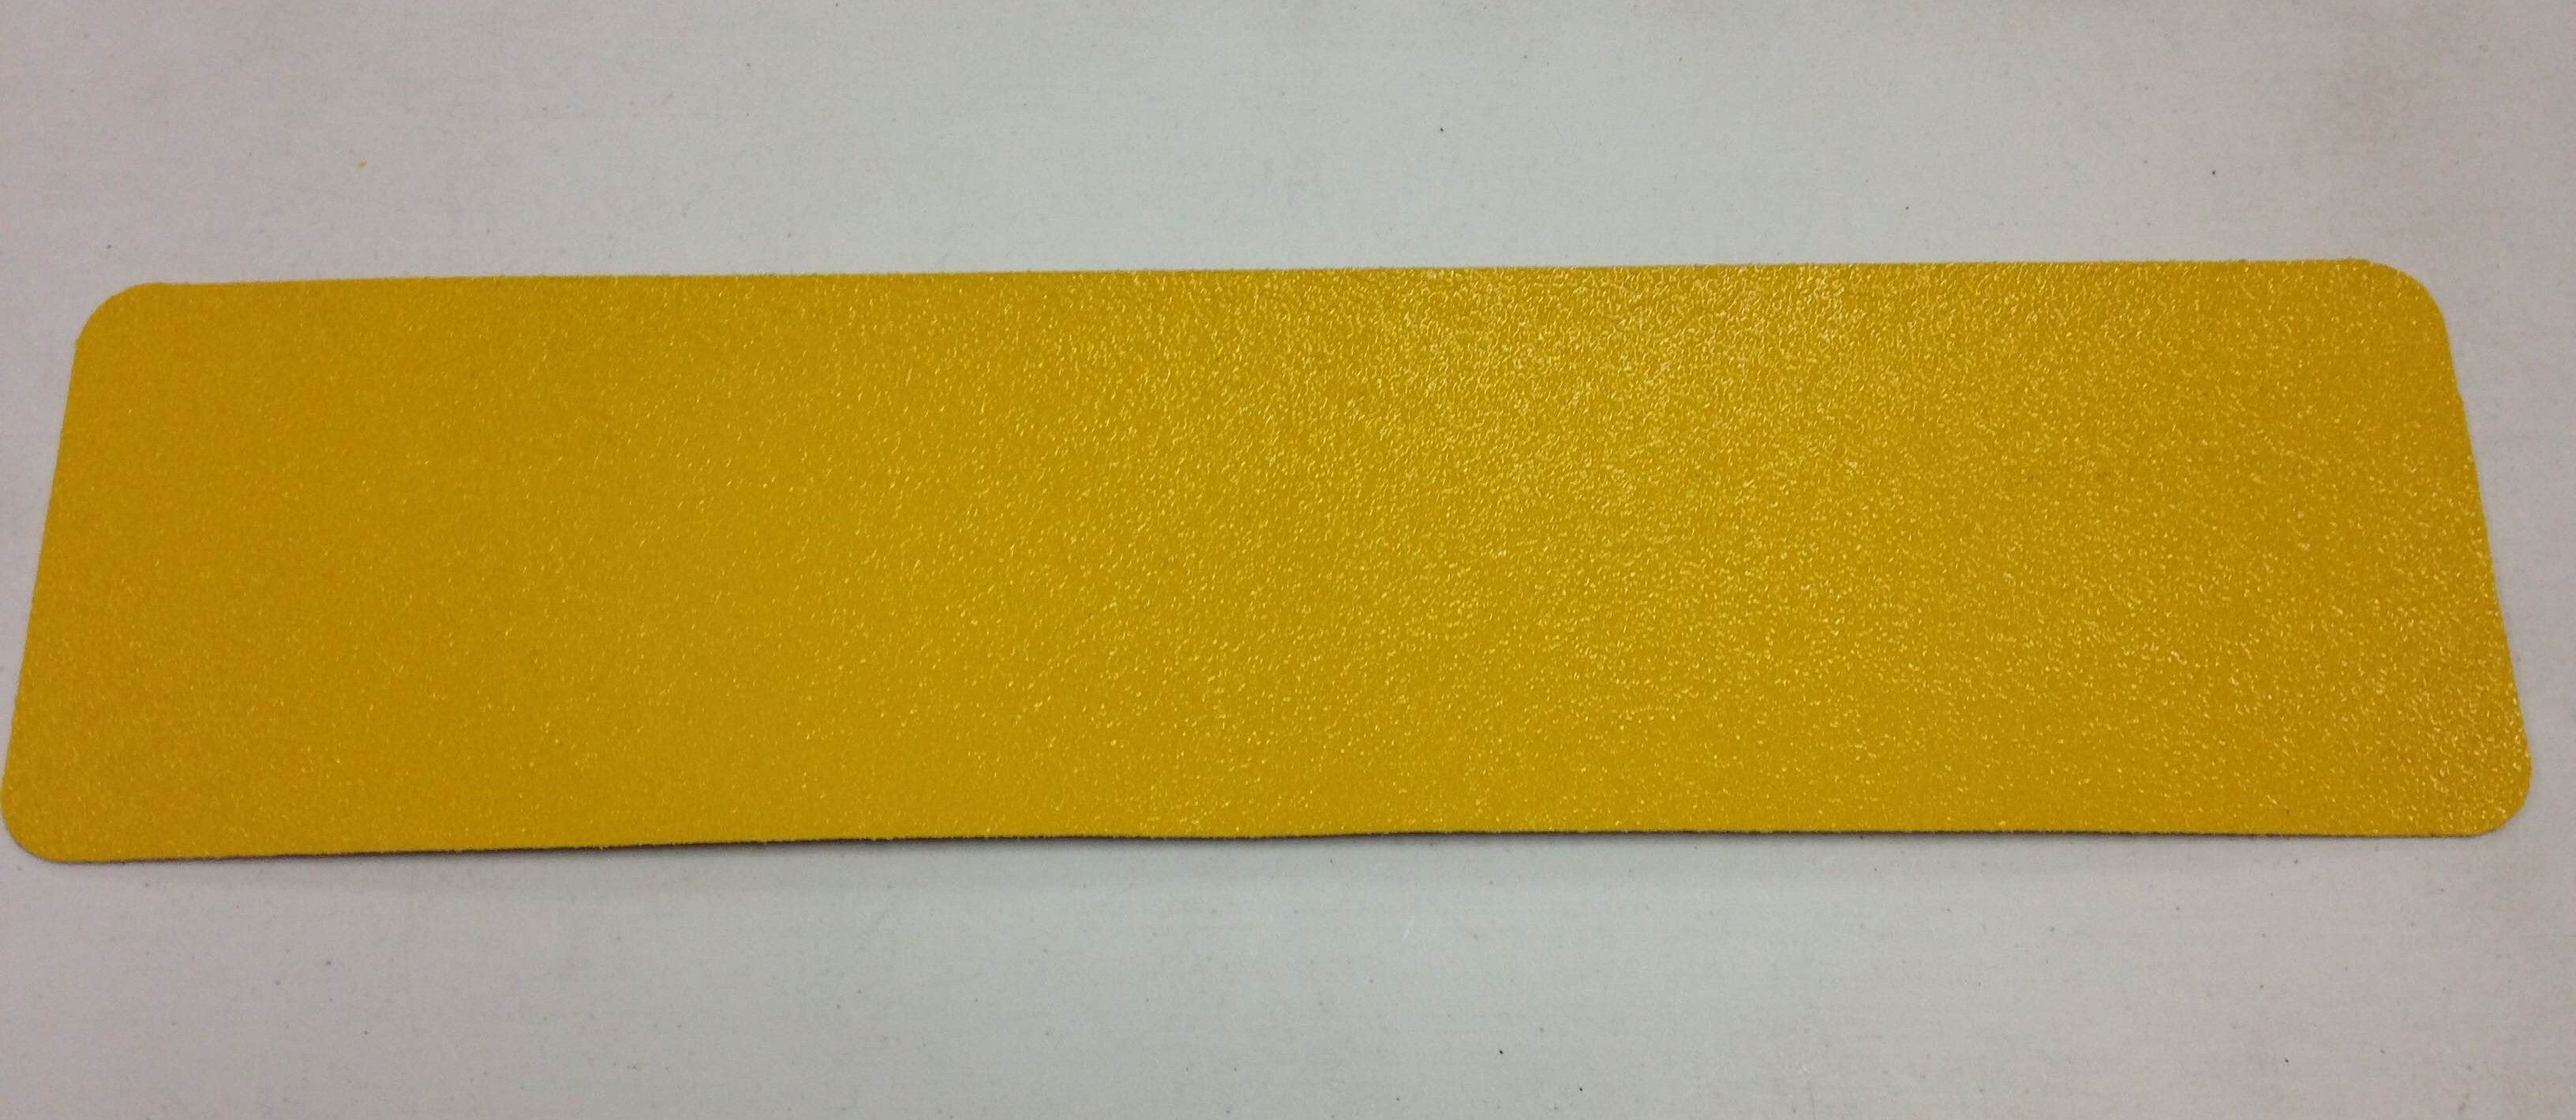 "6"" X 24"" Tread Extreme Adhesive Heavy Duty Abrasive Coarse Grit Anti Slip Tape Treads Yellow 84808EC Case of 12"